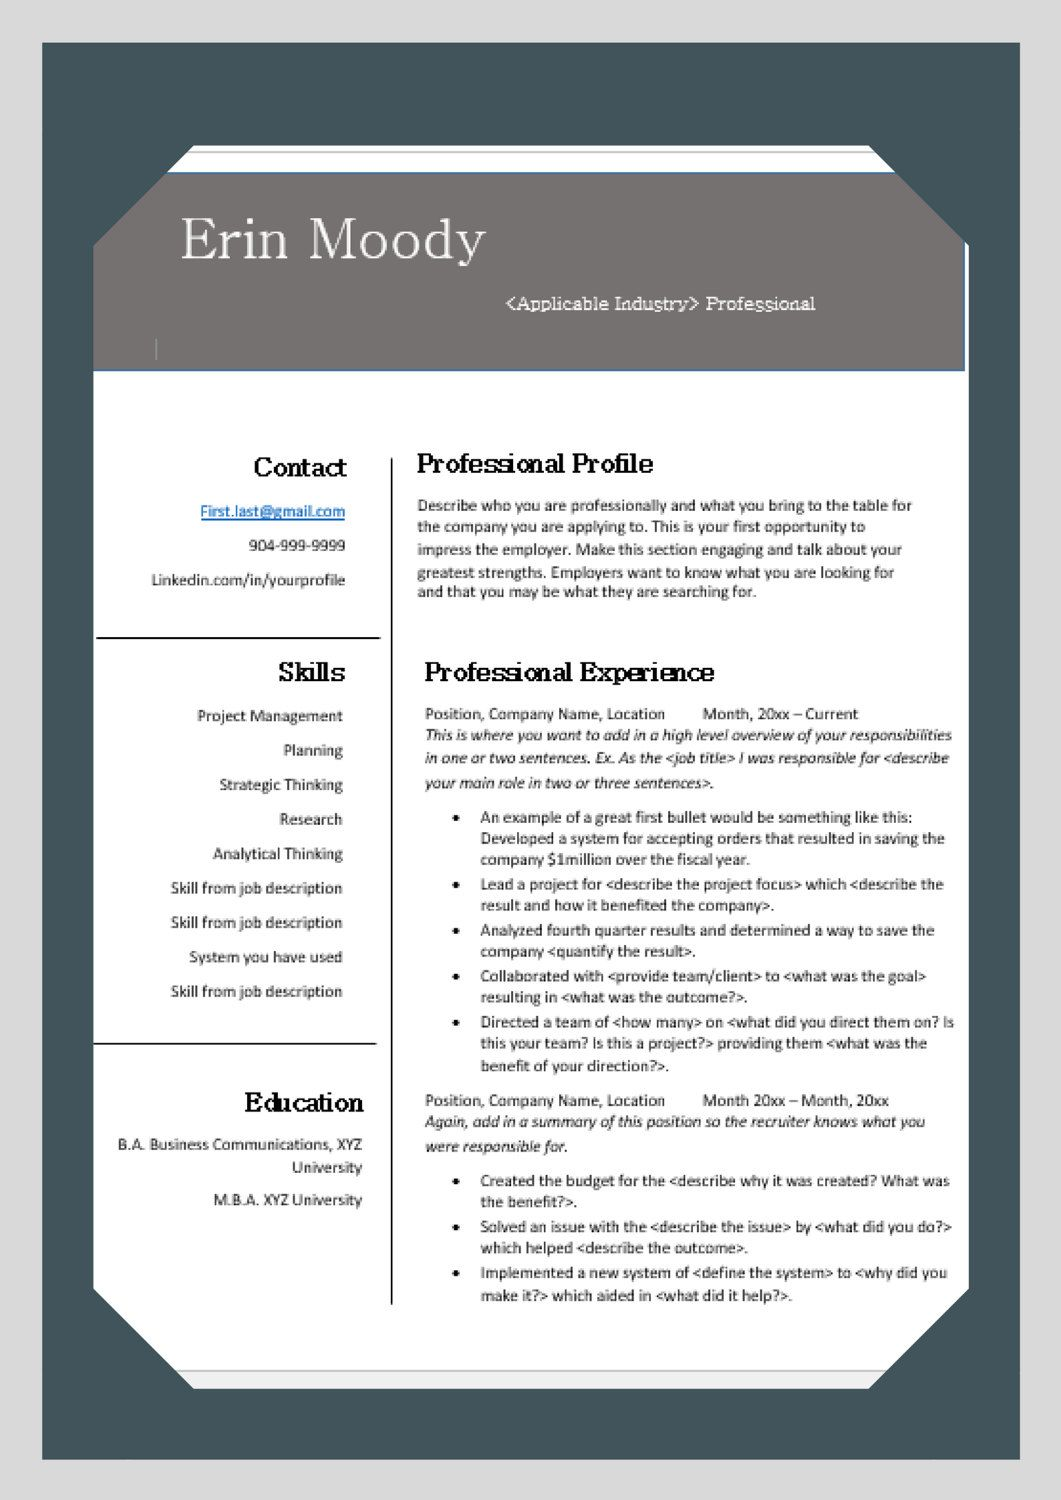 Perfect Resume Layout The Perfect Resume Cornerstone For Your Job Search By